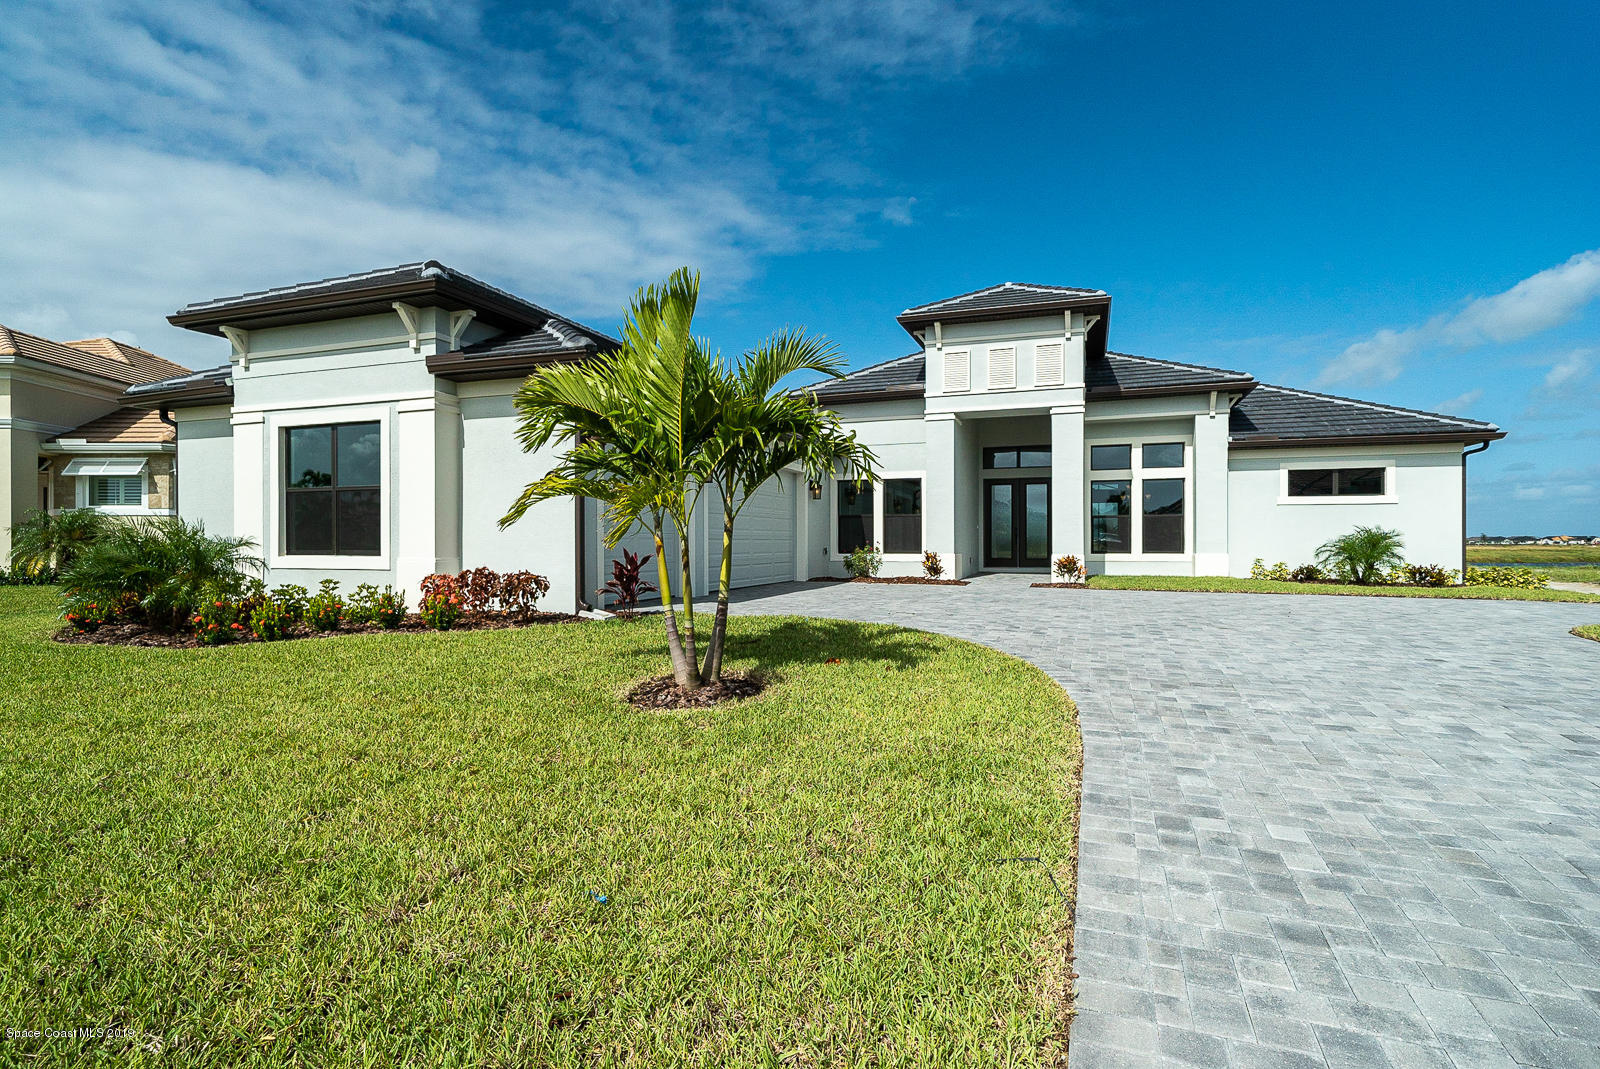 Single Family Homes for Sale at 8639 Serrano Melbourne, Florida 32940 United States